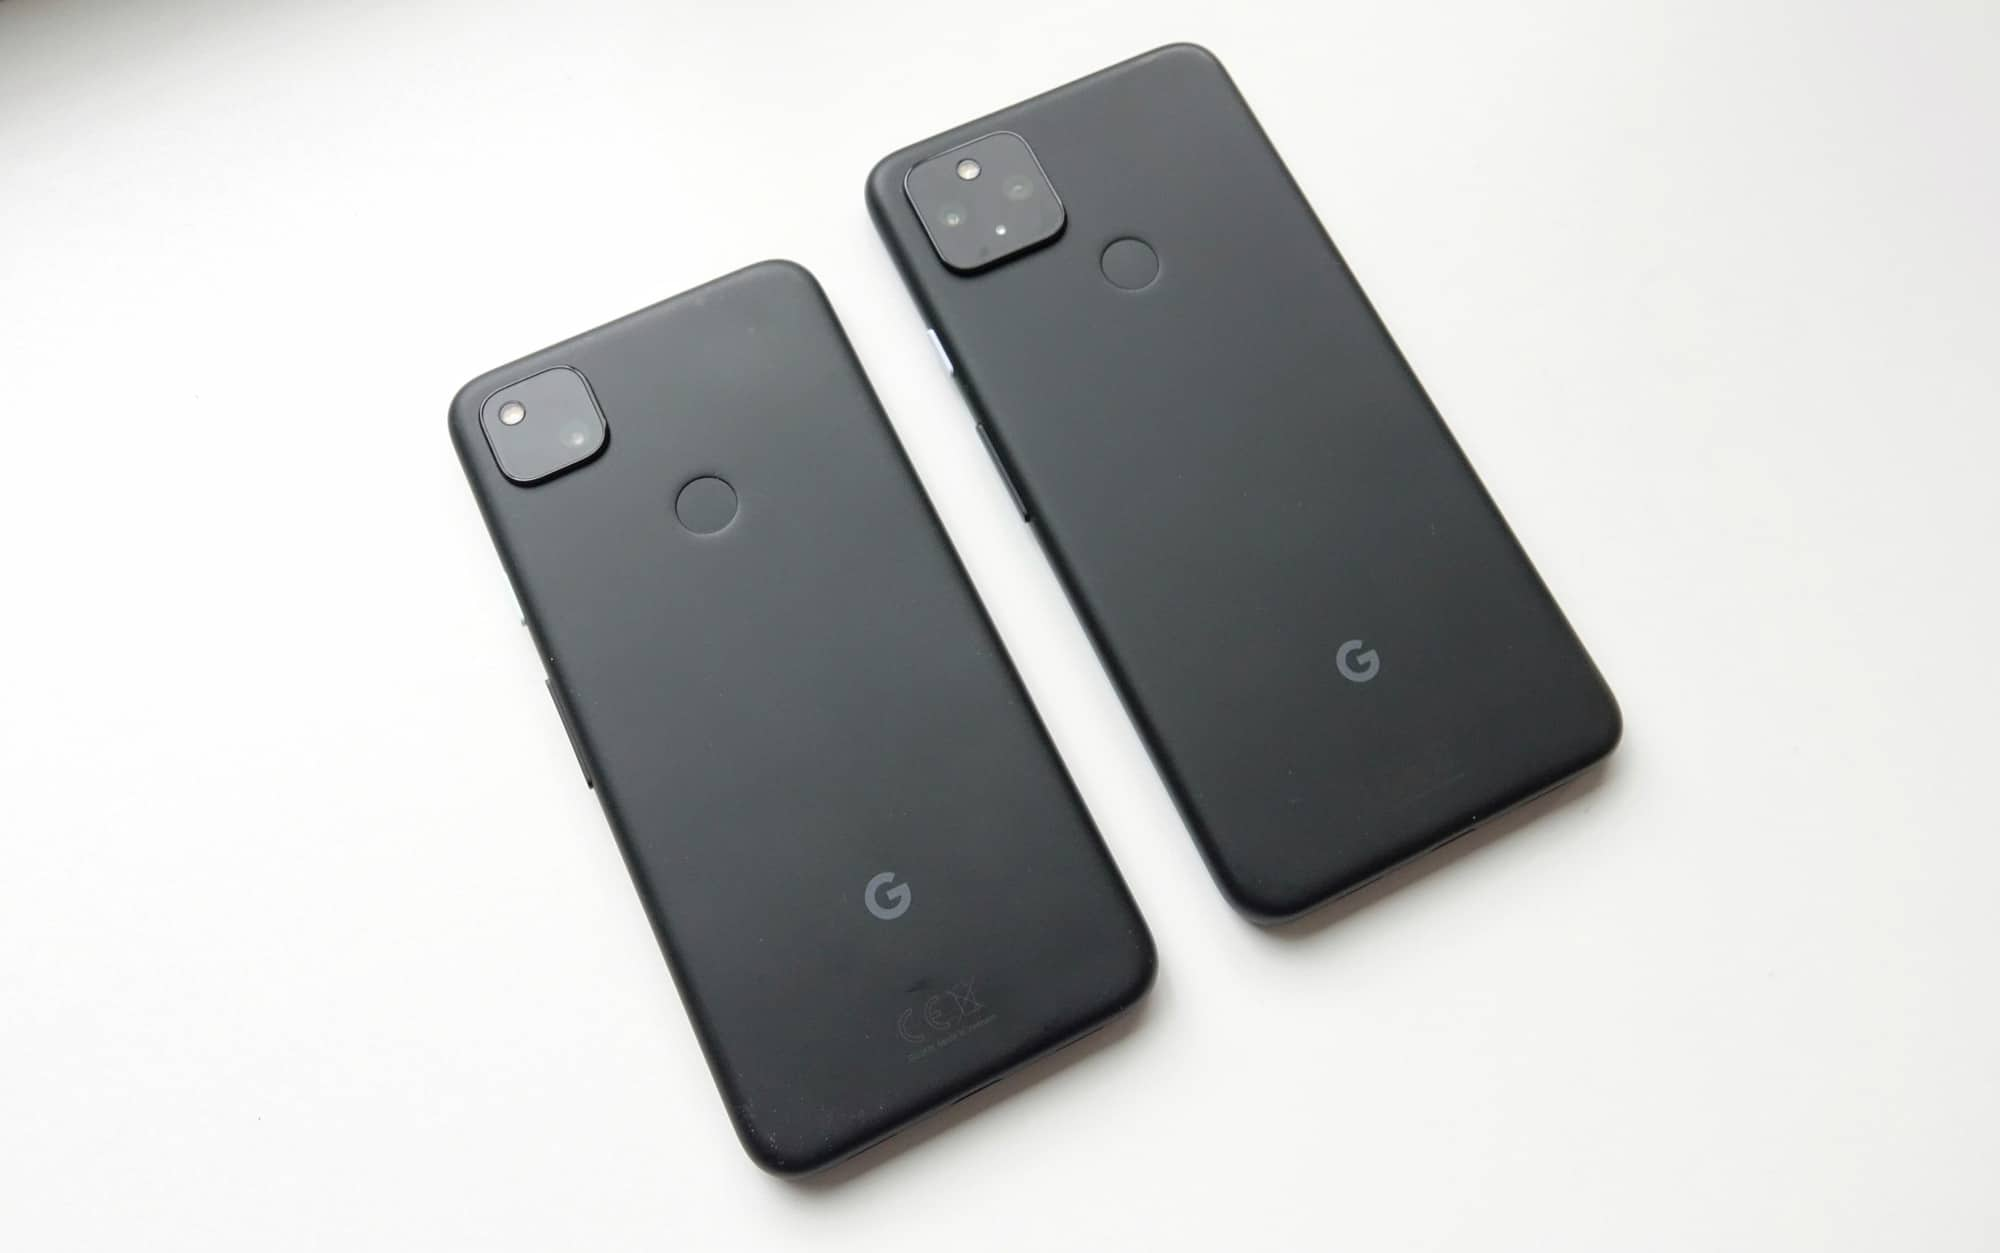 Google Pixel 4a (left) with Google Pixel 4a with 5G (right)